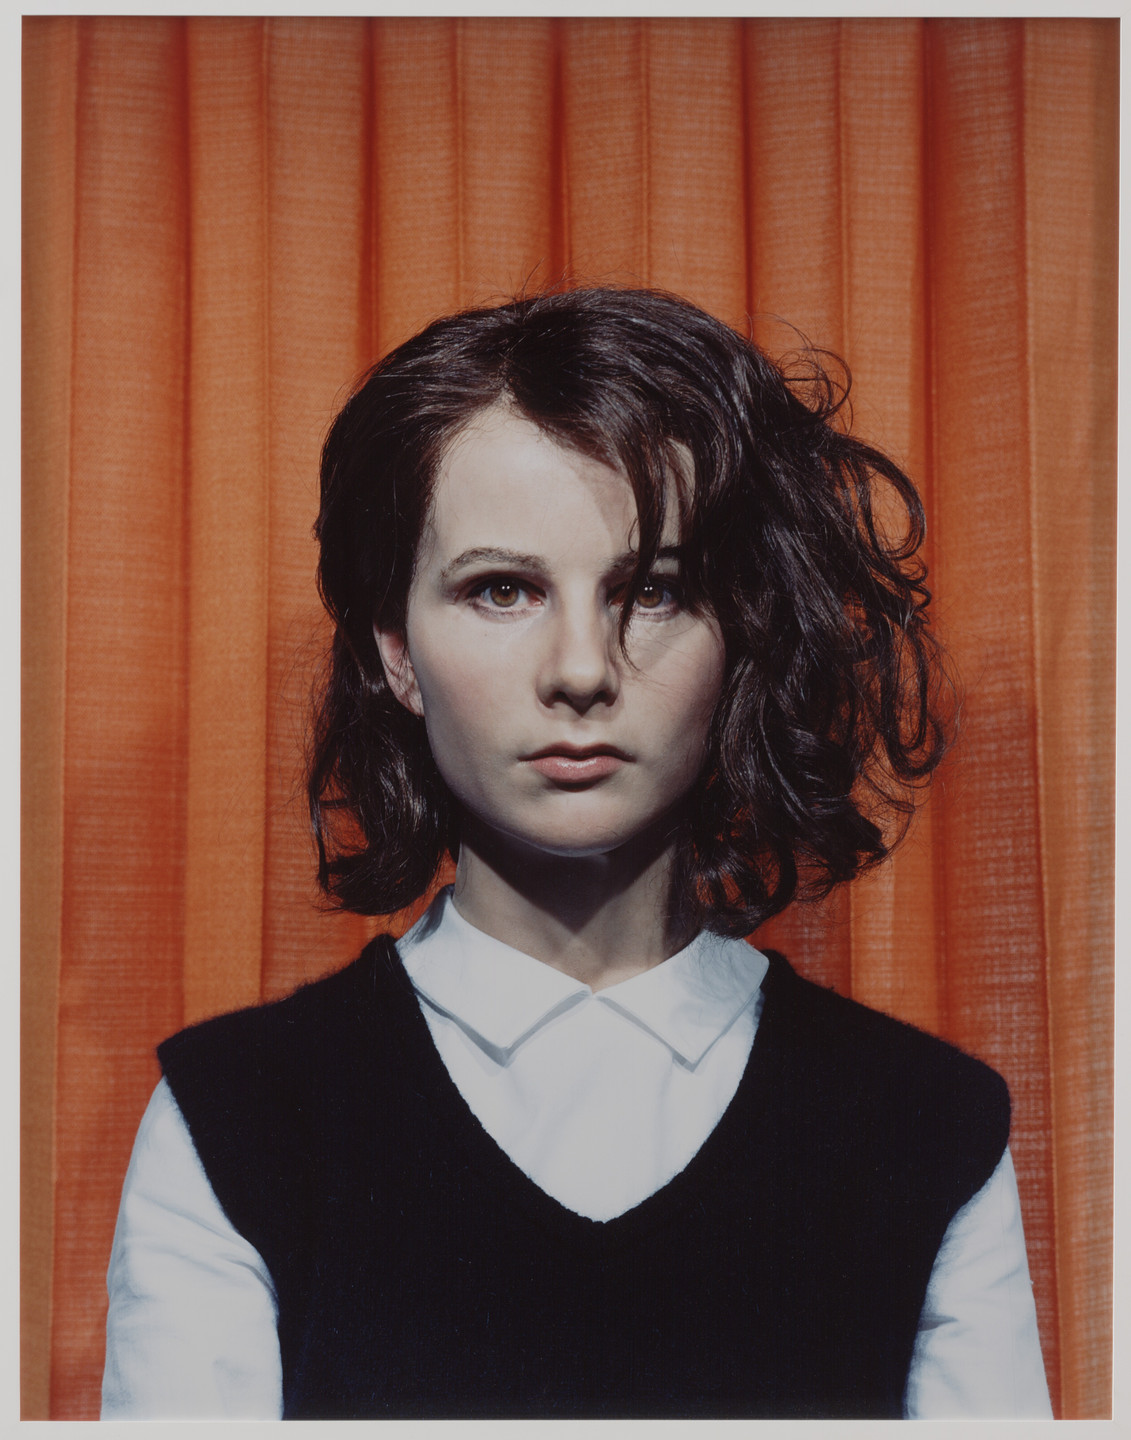 Gillian Wearing. Self-Portrait at 17 Years Old. 2003